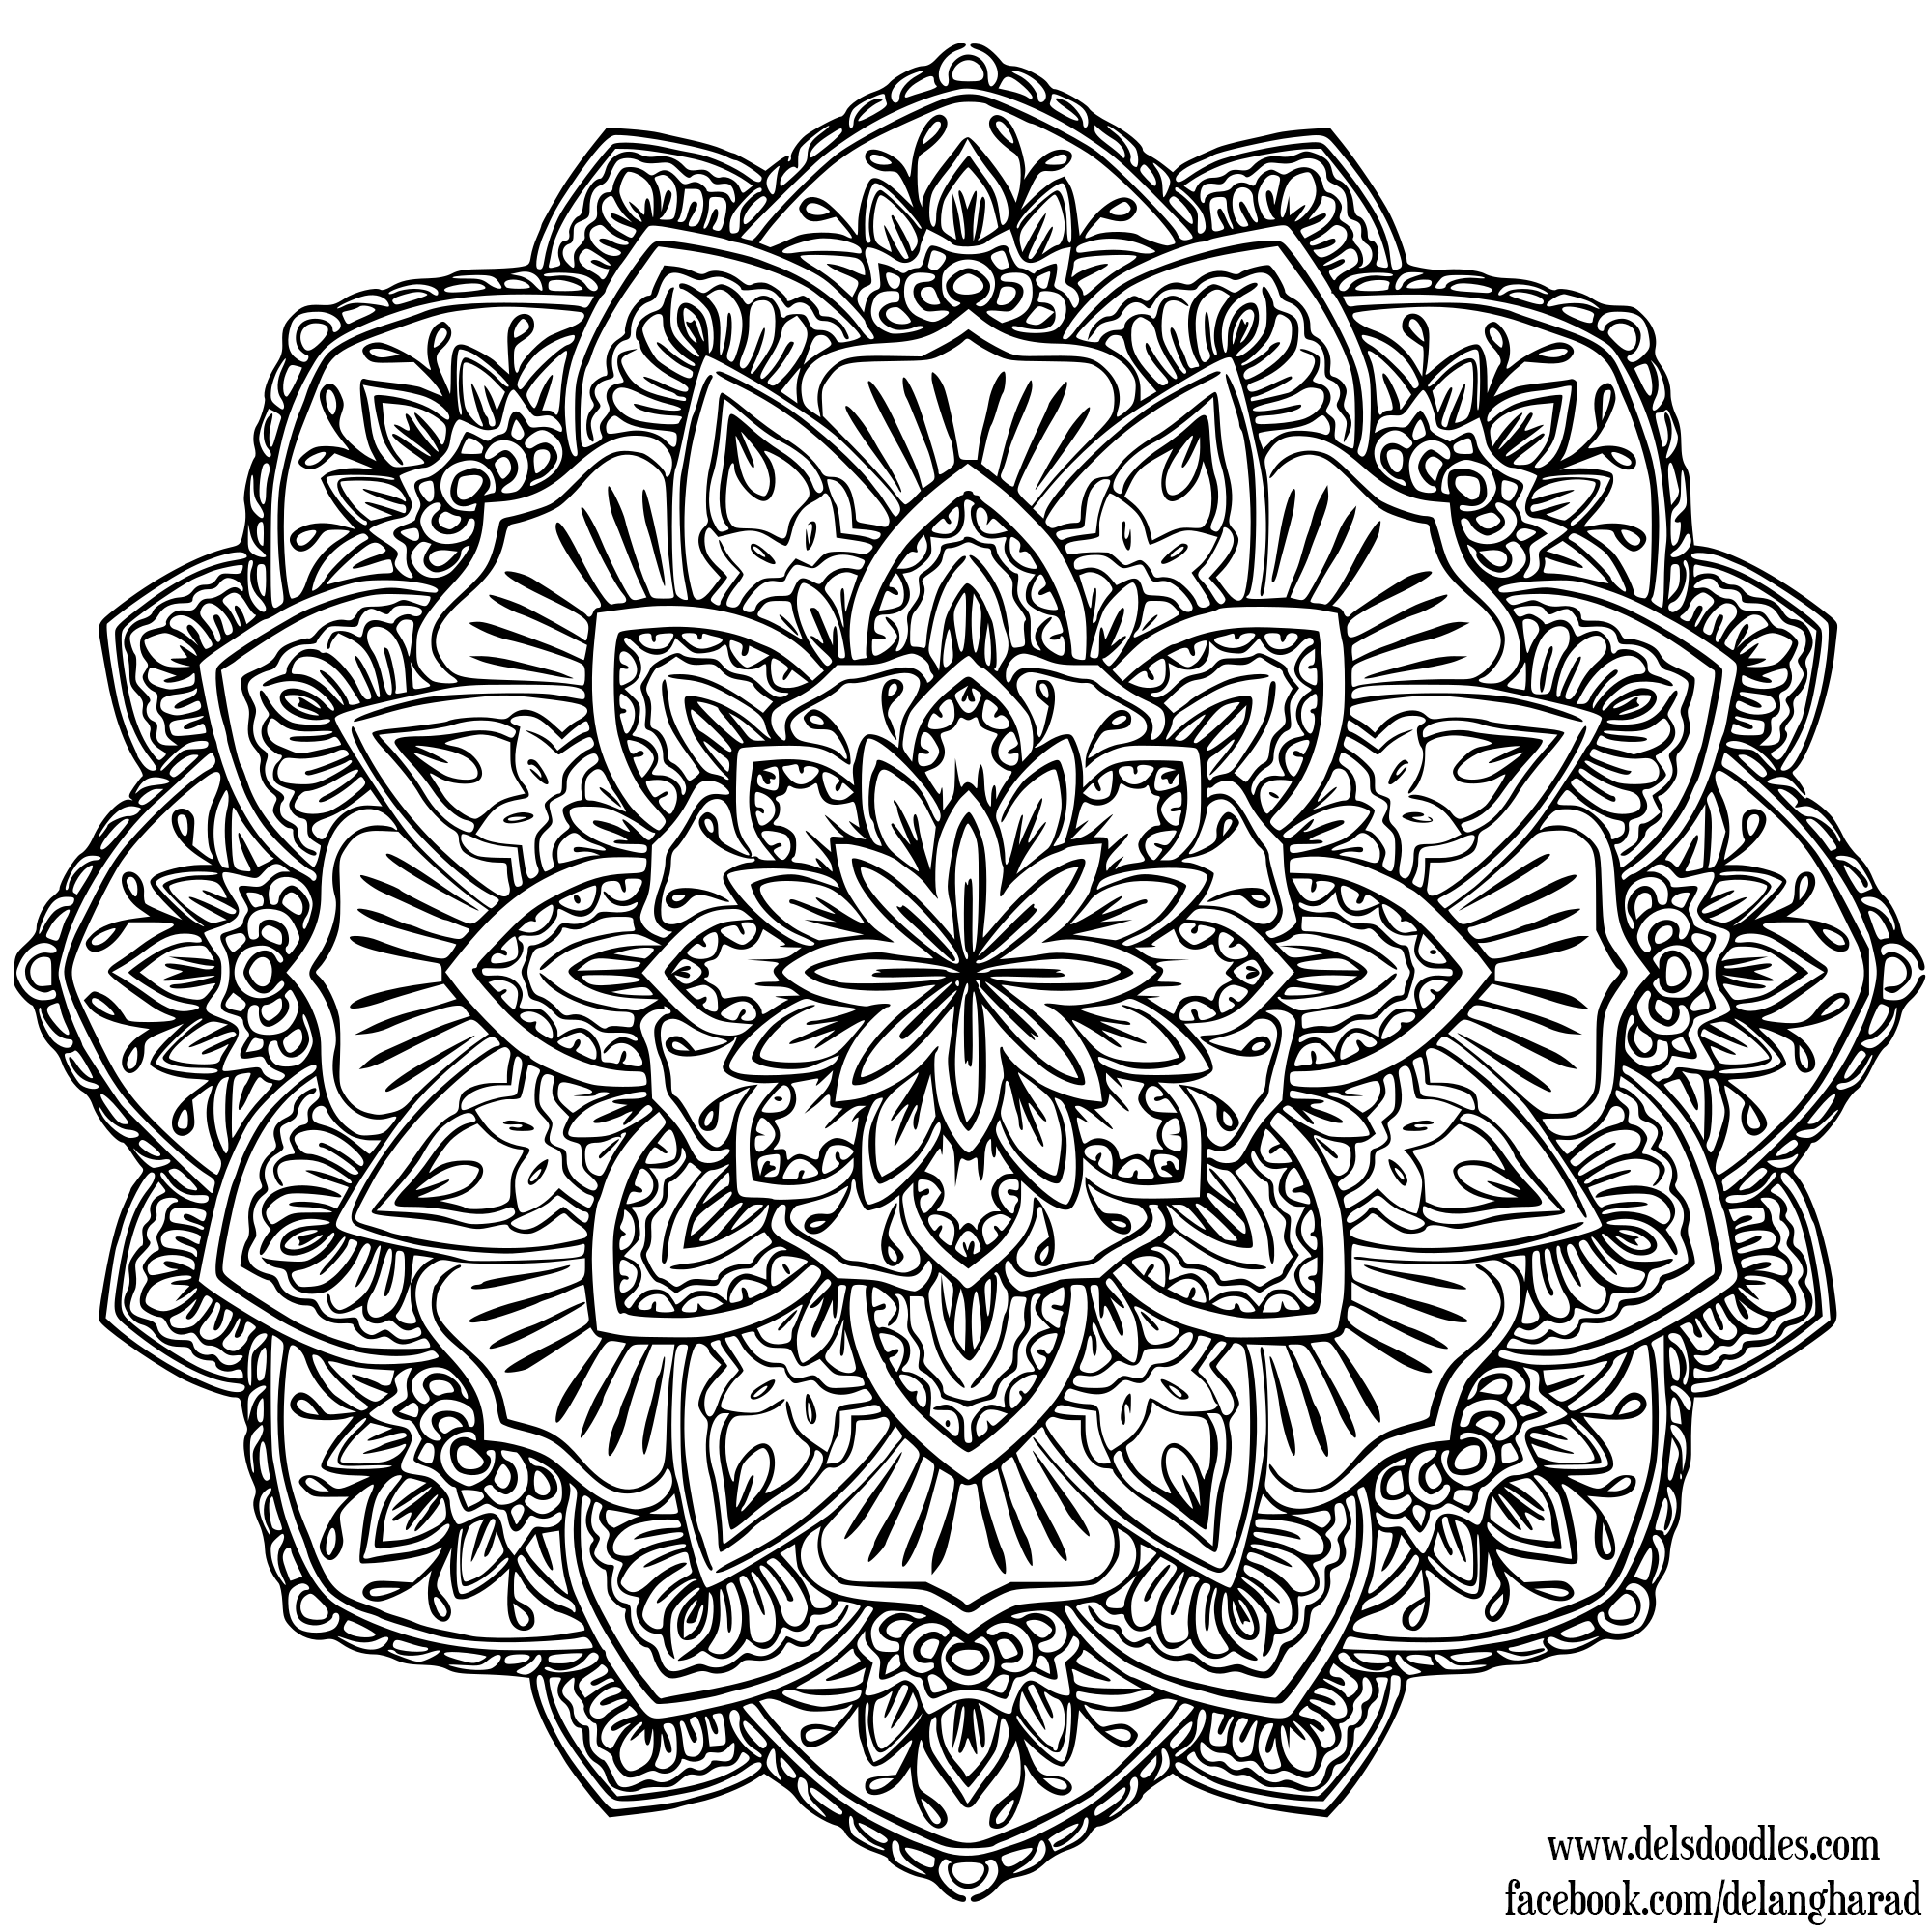 small coloring pages for adults - photo#2